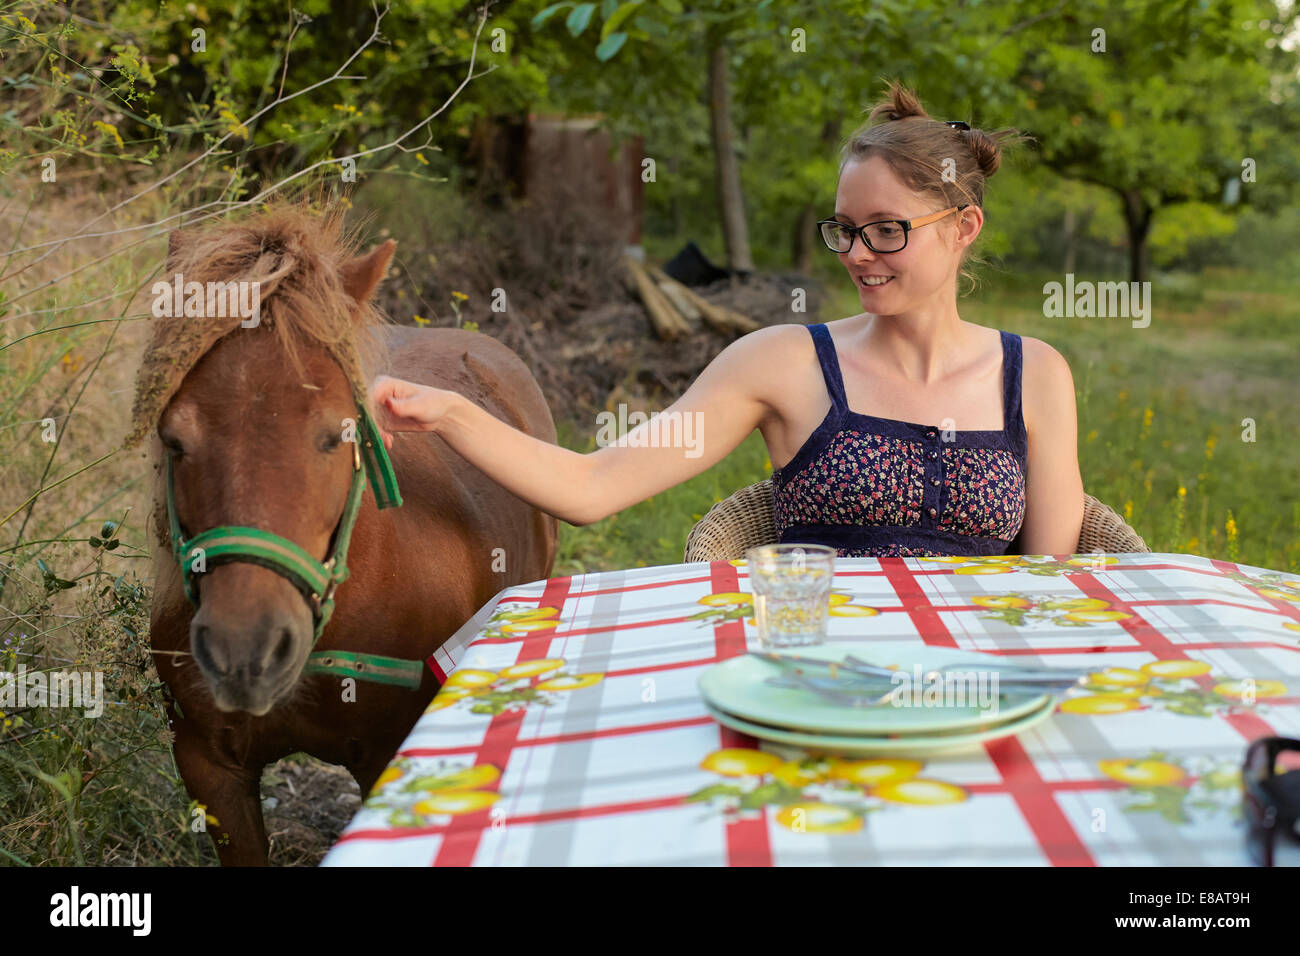 Young woman at table petting pony, Sierra Nevada, Andalucia Granada, Spain - Stock Image